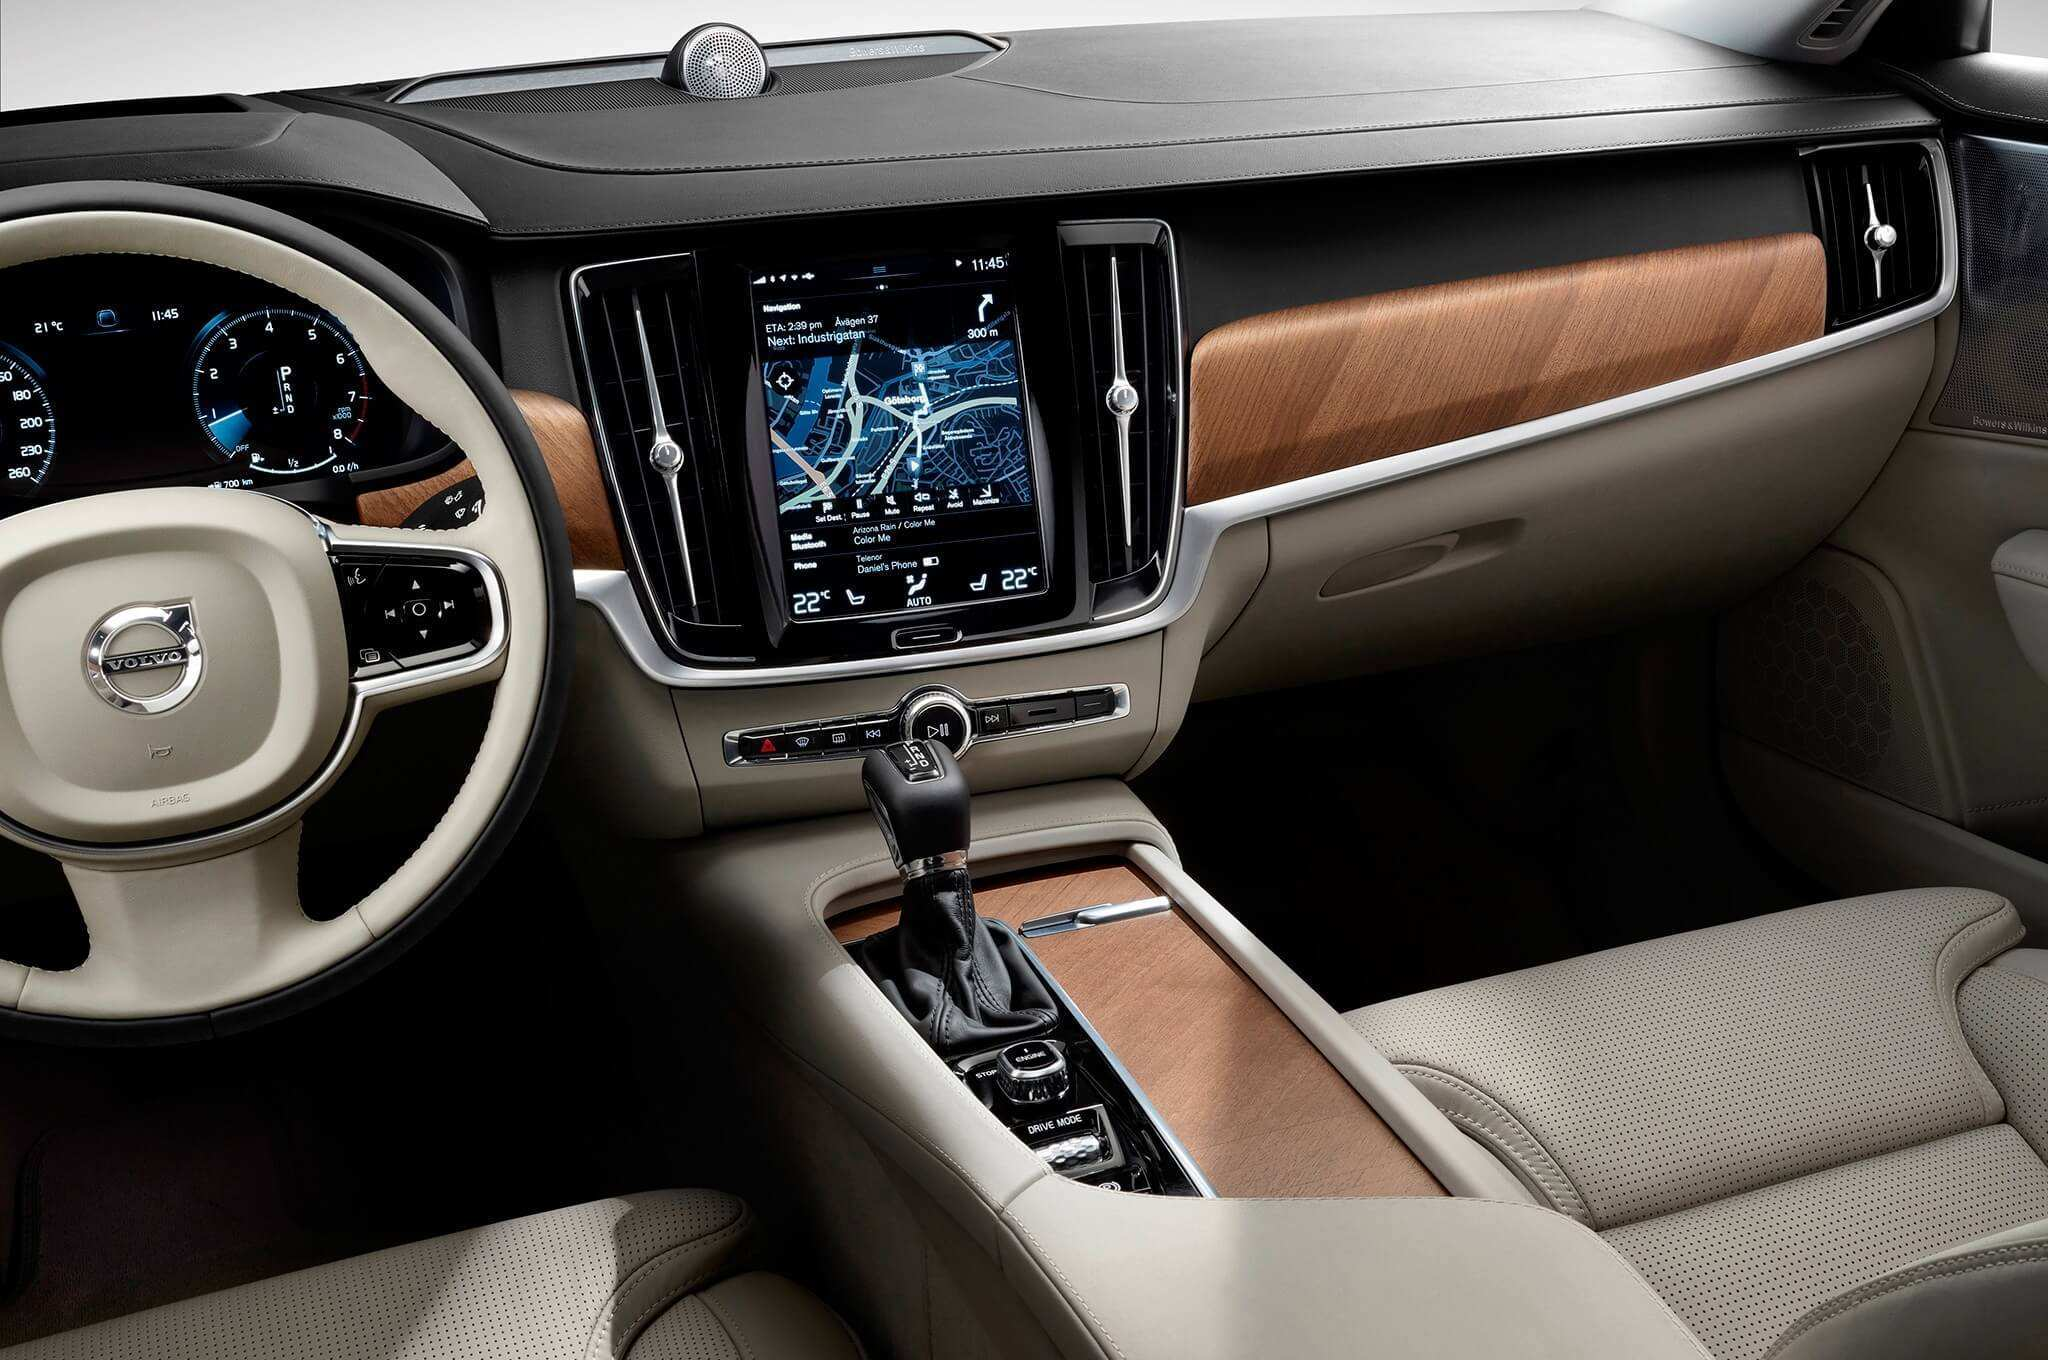 40 Gallery of Volvo Xc90 2019 Interior Configurations for Volvo Xc90 2019 Interior